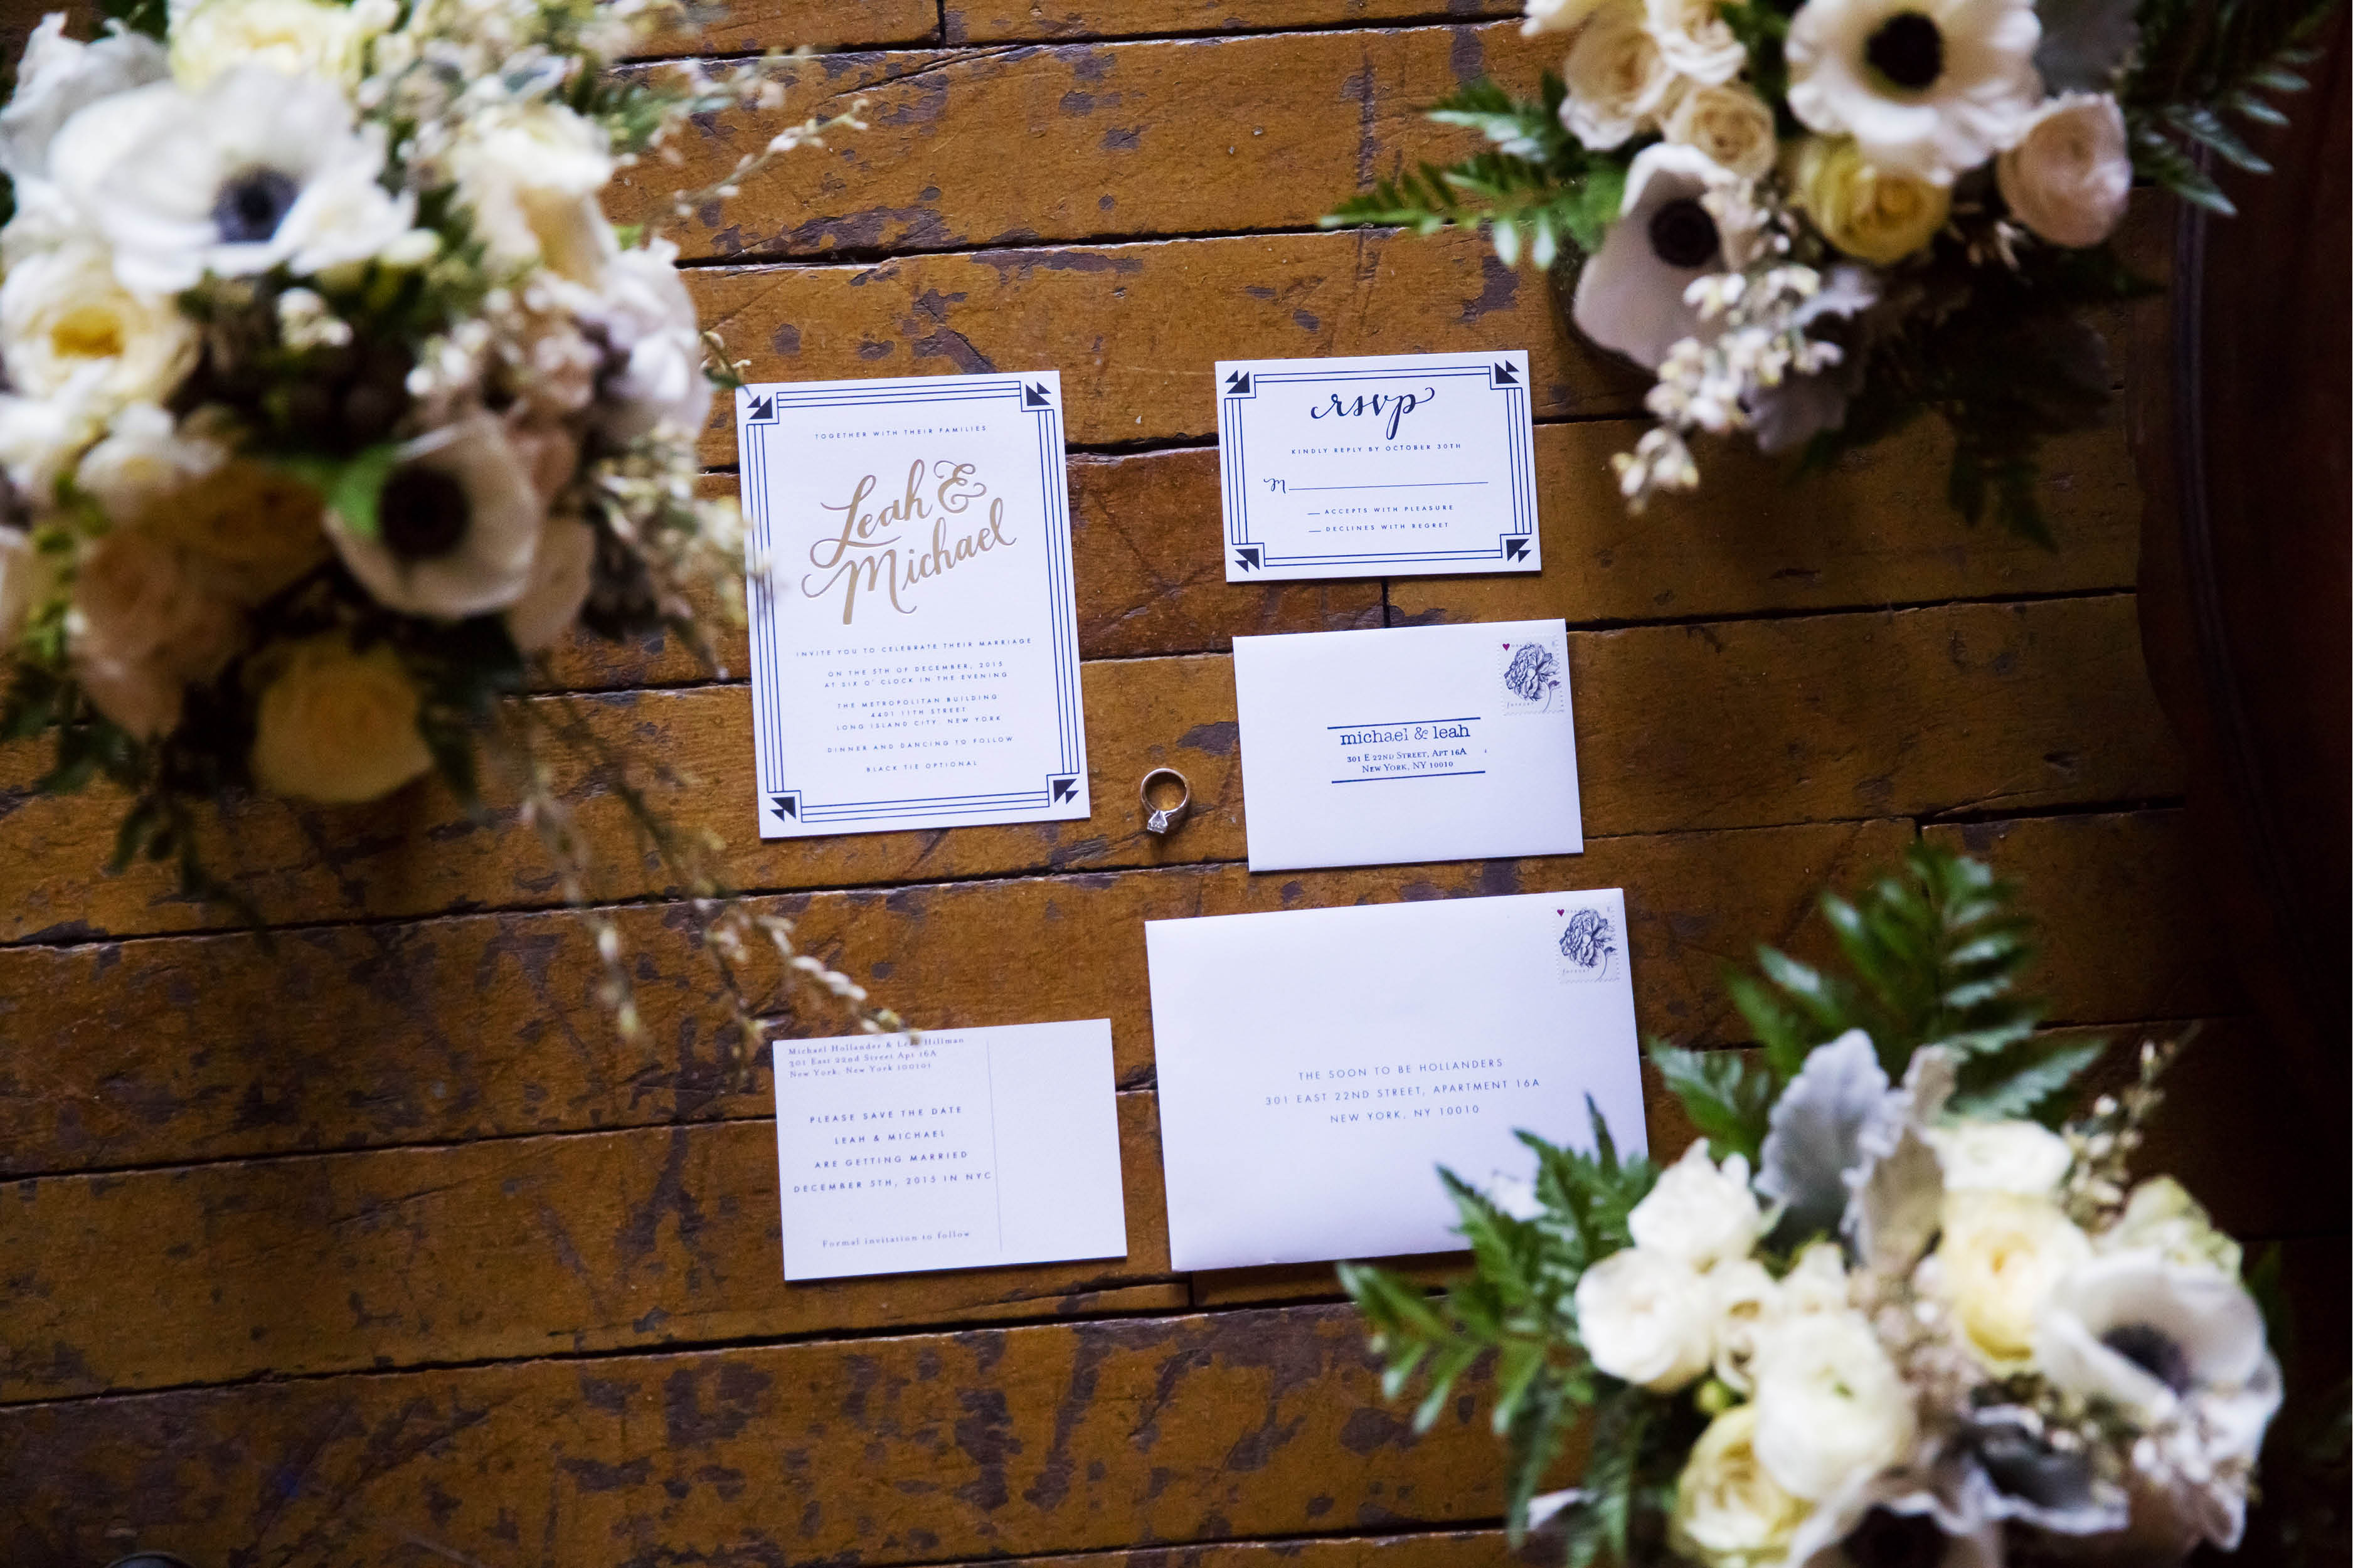 Emma_cleary_photography Metropolitan building wedding2